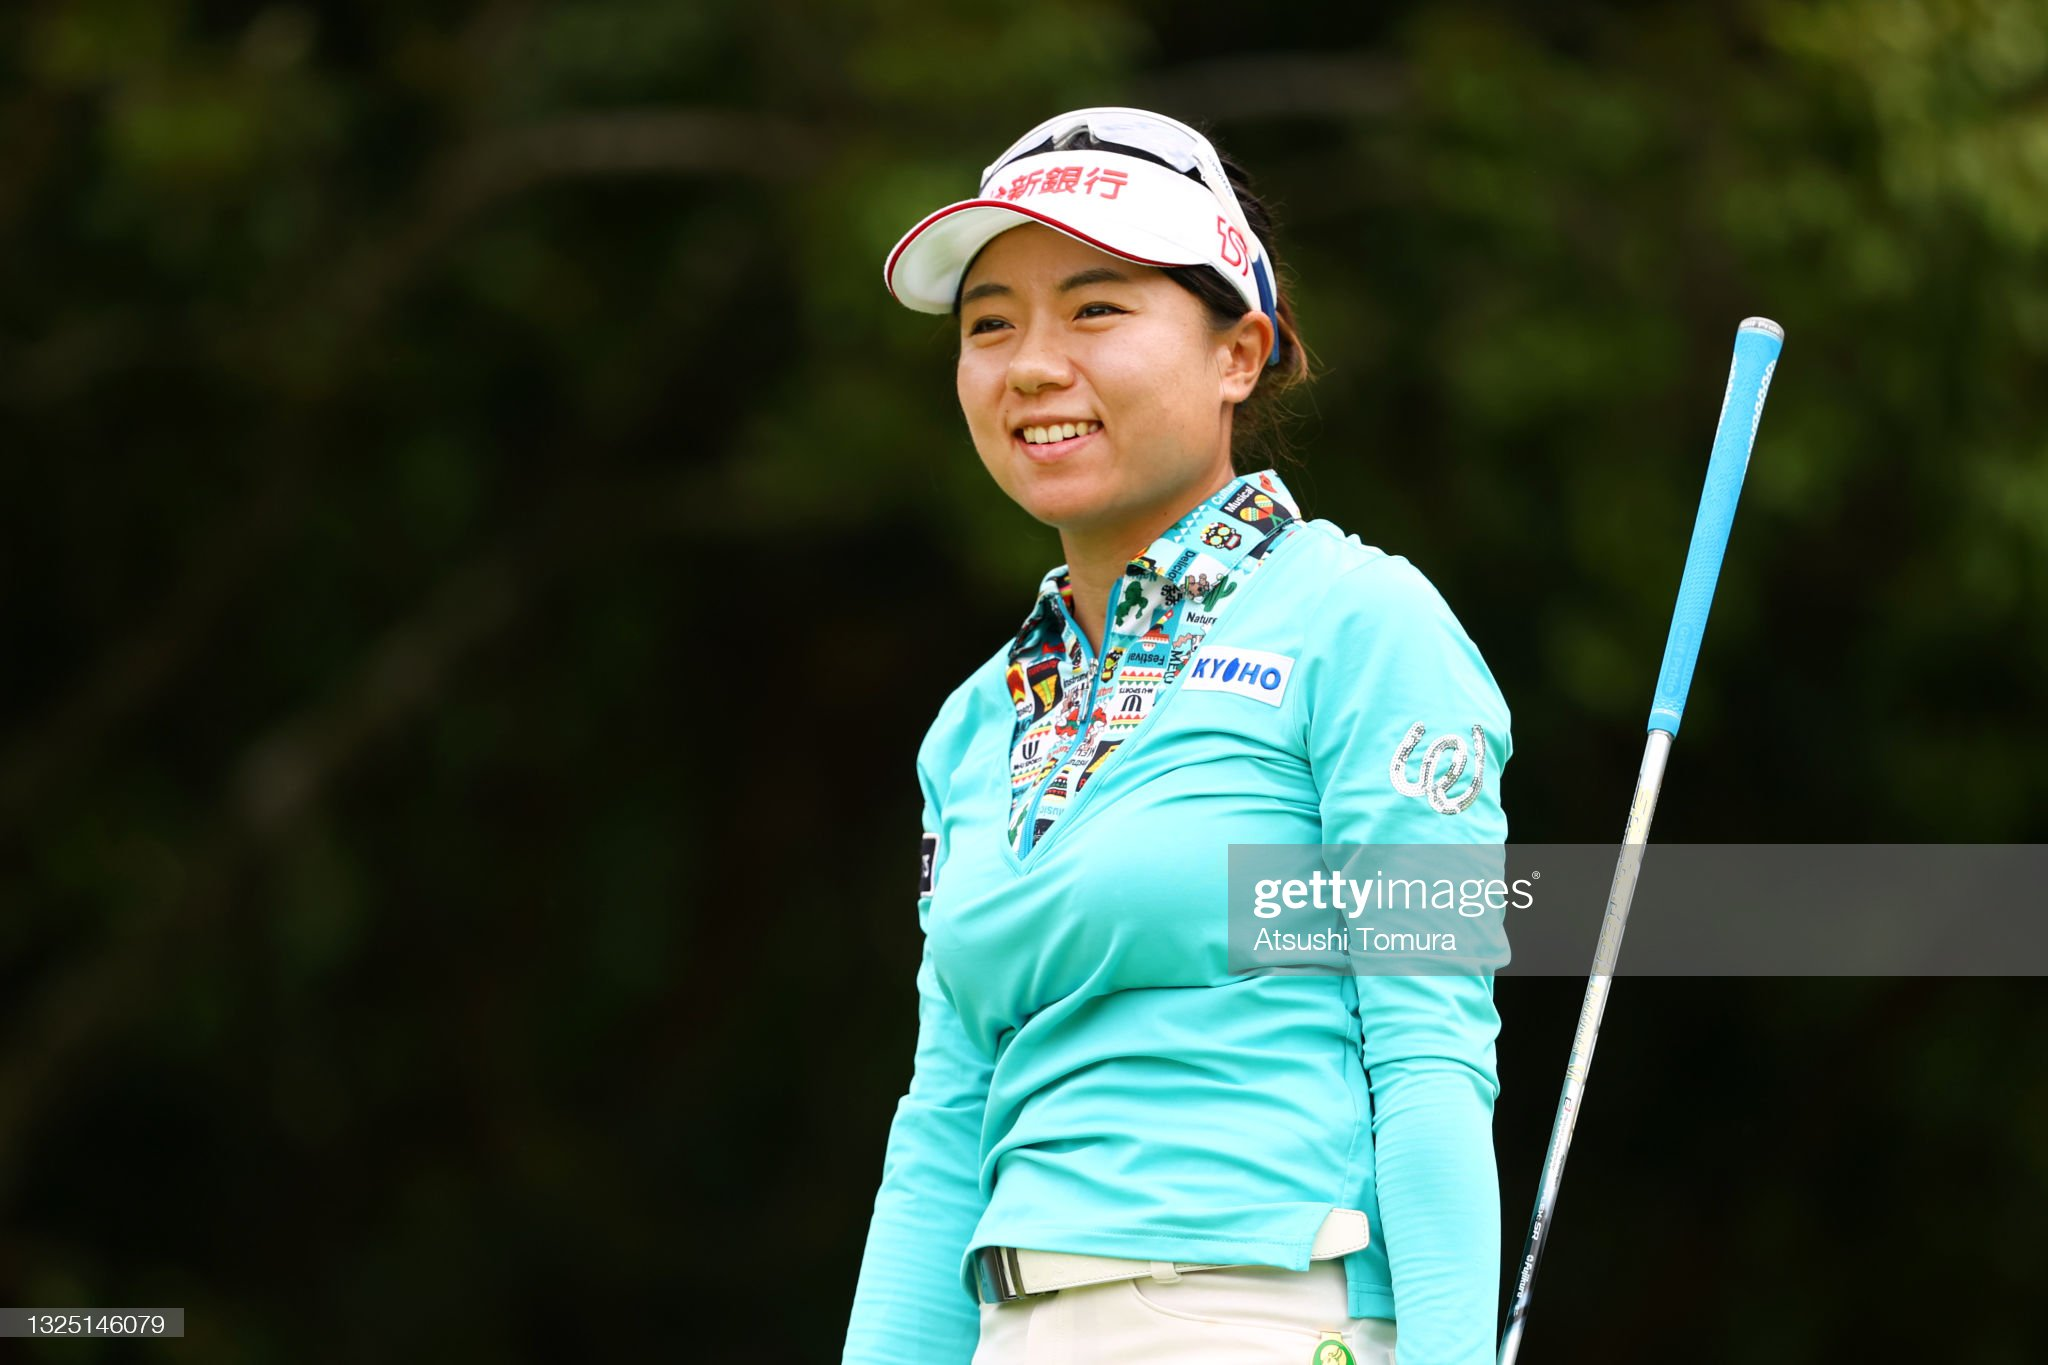 https://media.gettyimages.com/photos/peiying-tsai-of-chinese-taipei-reacts-after-her-tee-shot-on-the-5th-picture-id1325146079?s=2048x2048